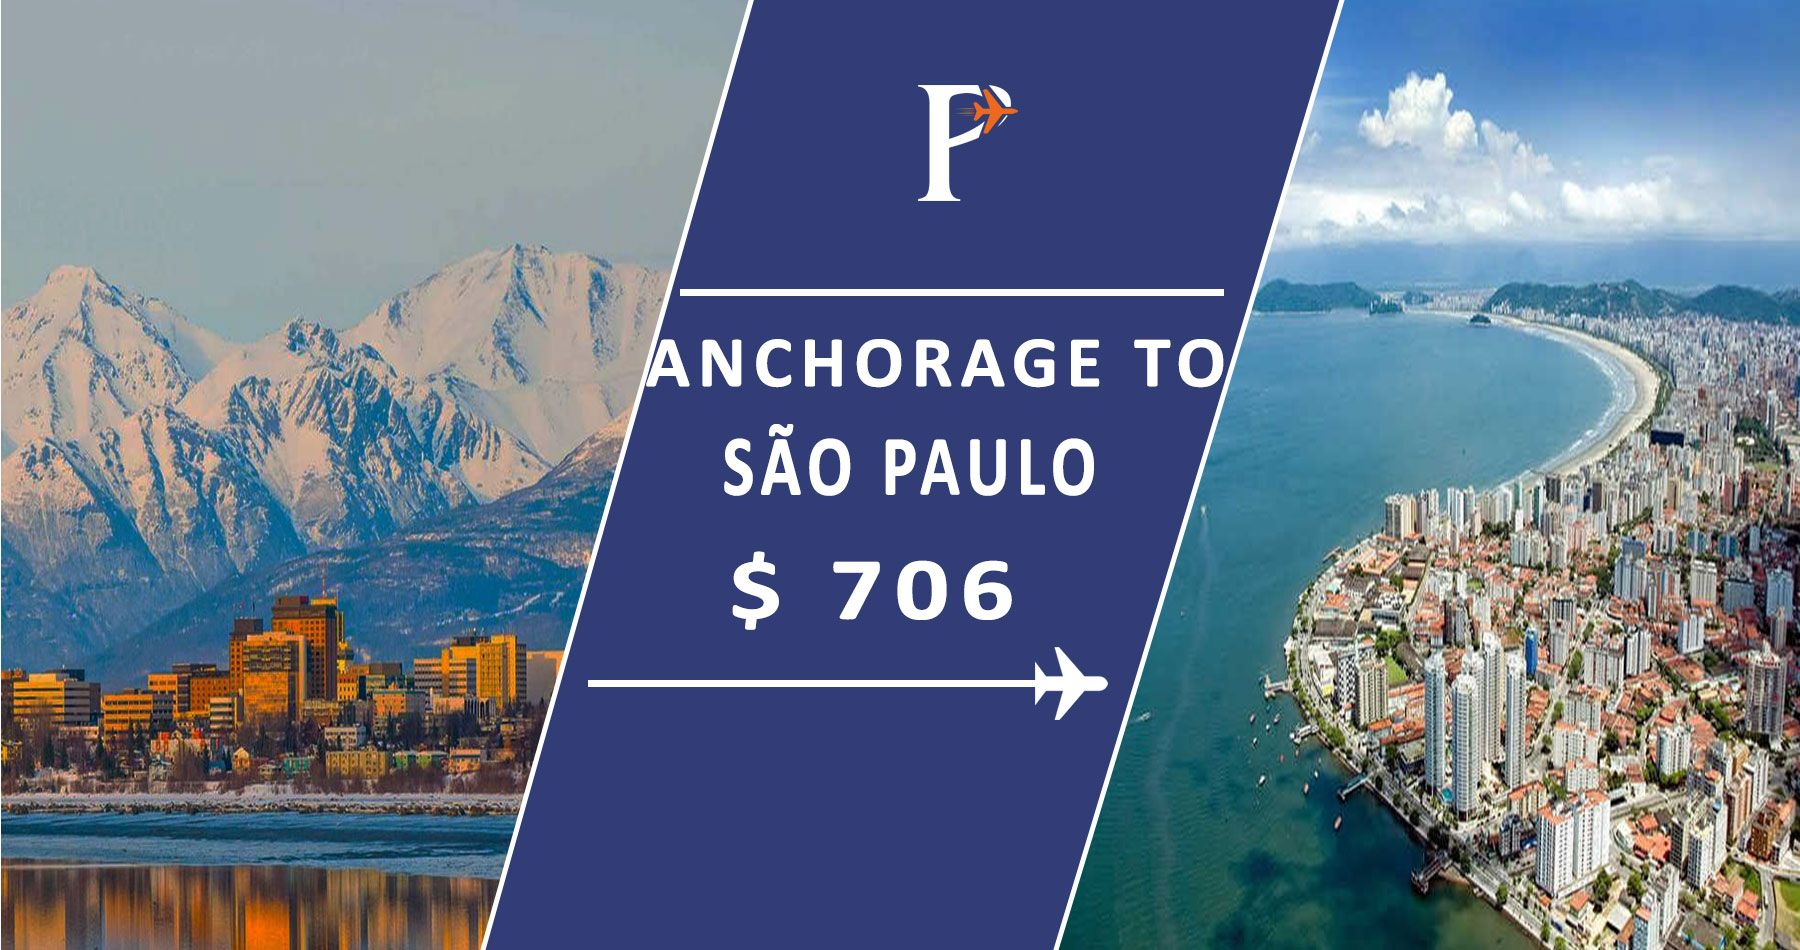 Find airfare deals on cheaptickets from Anchorage ANC